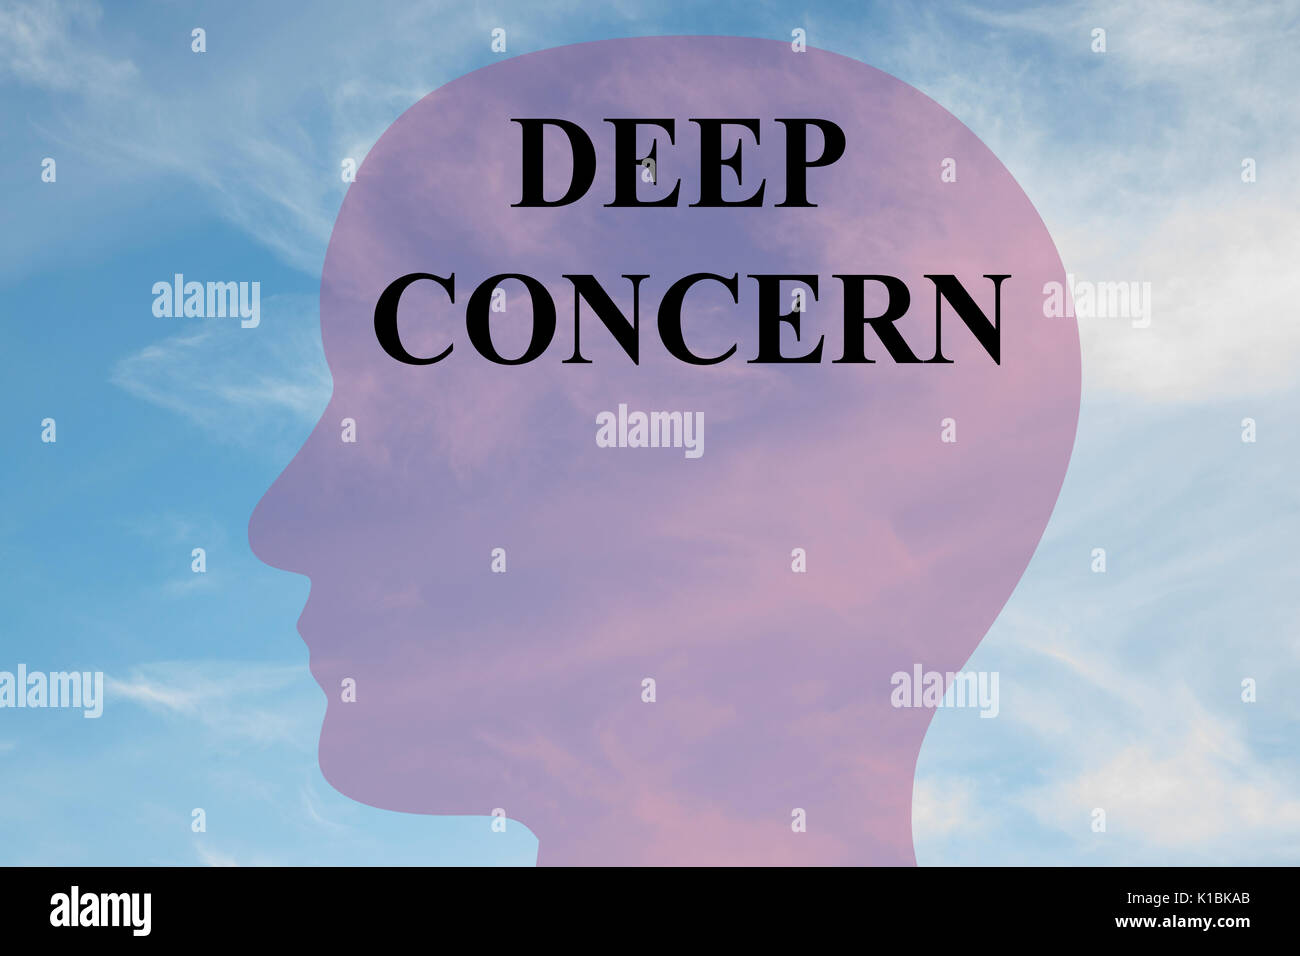 Render illustration of Deep Concern title on head silhouette, with cloudy sky as a background. - Stock Image